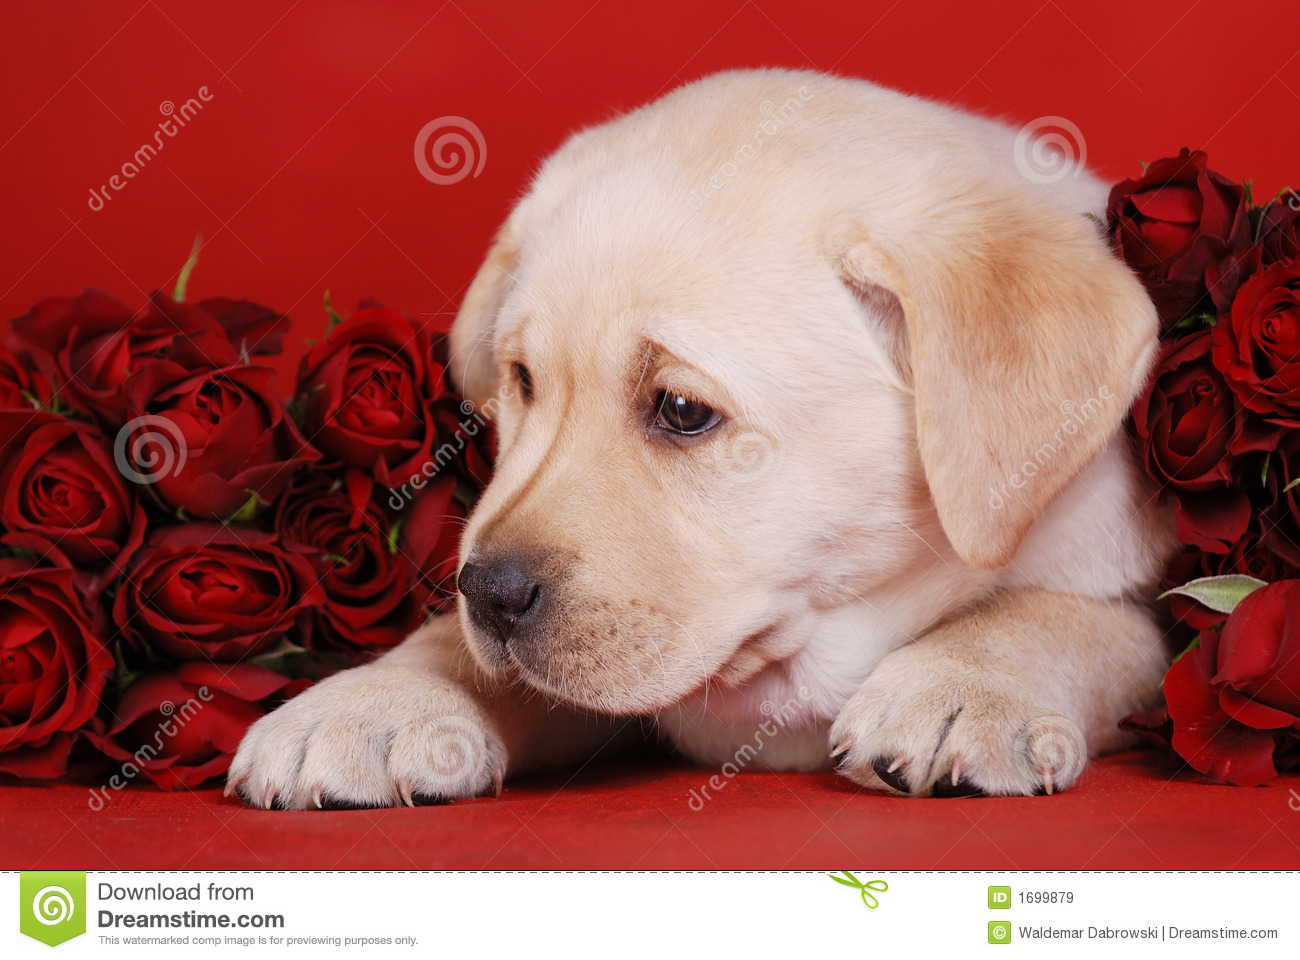 All Cute Flower Wallpaper Puppy And Roses Stock Image Image Of Emotion Friendship